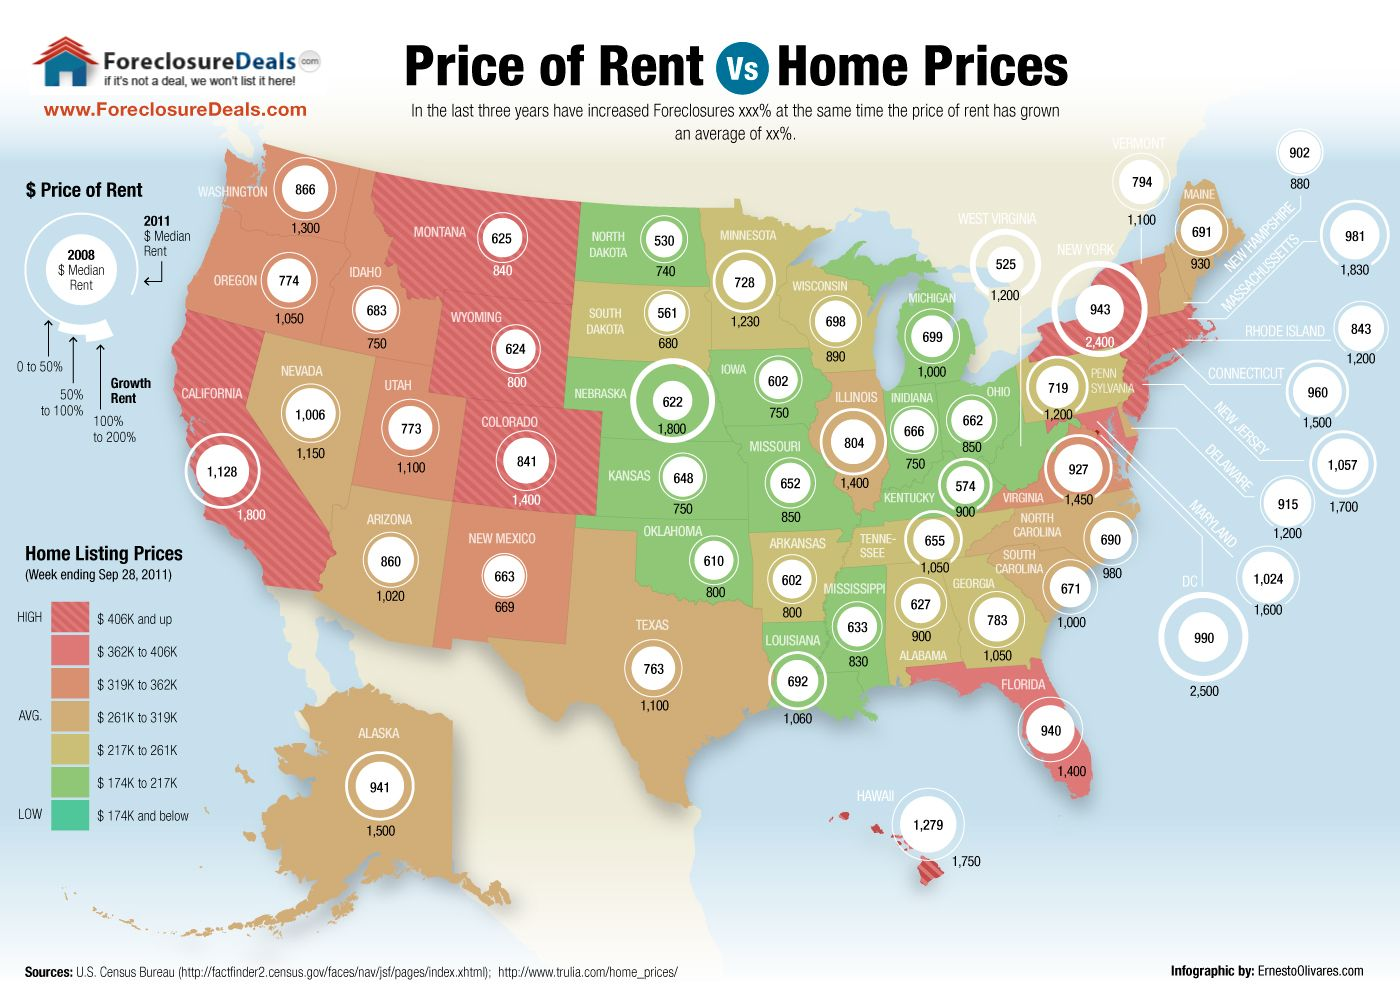 Infographics: Price of rent vs Home Prices in the United States